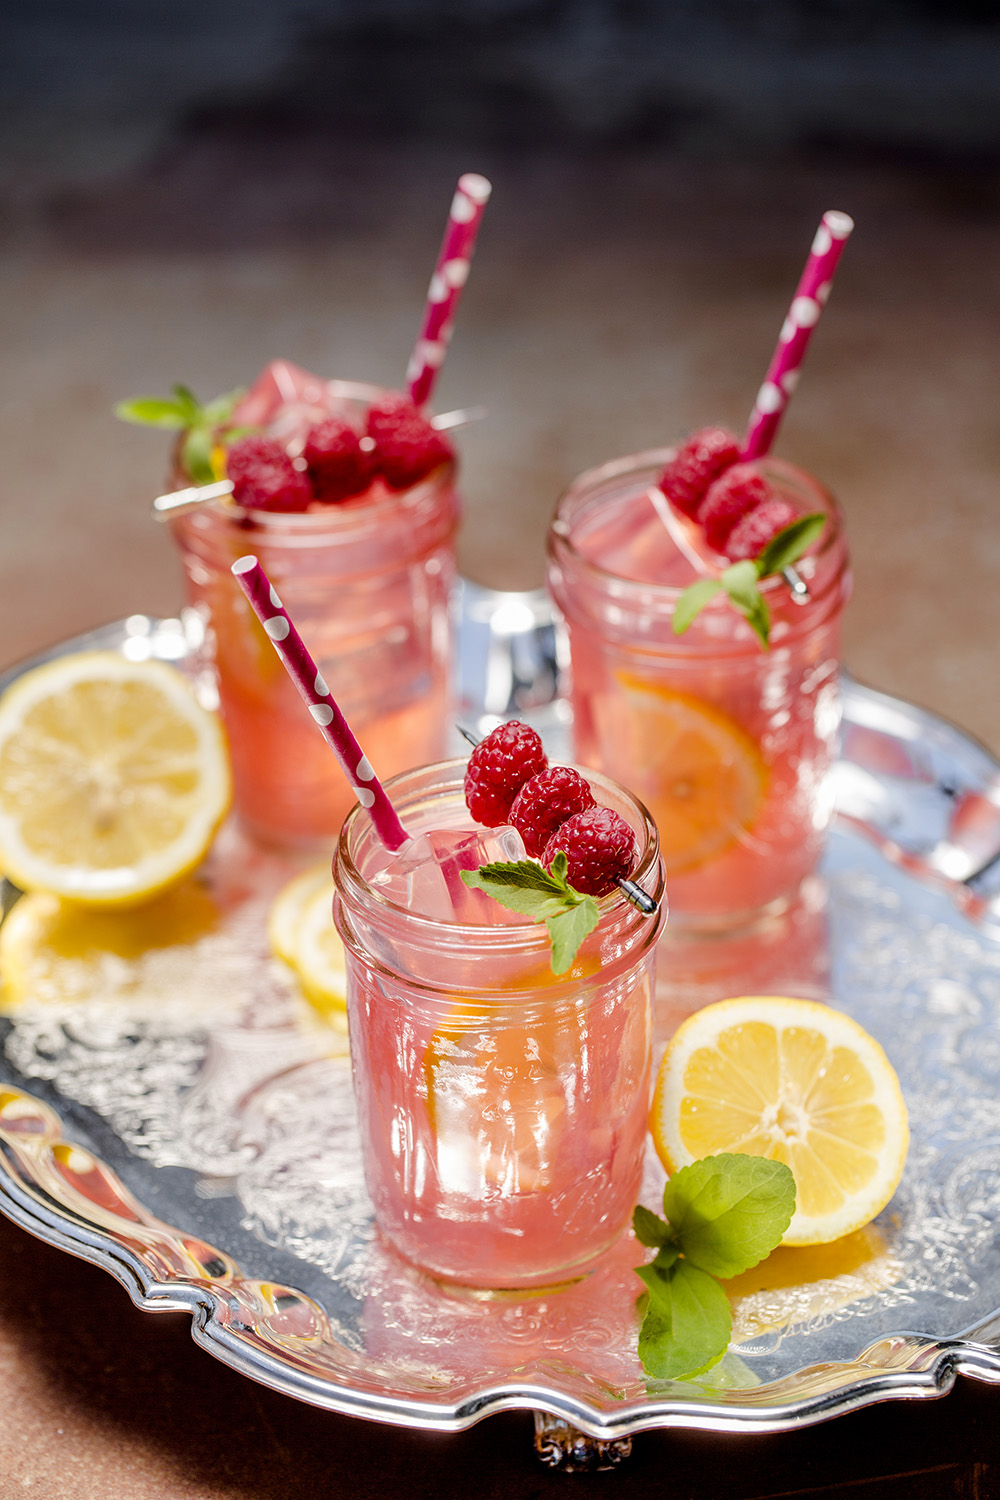 Why have regular lemonade when you can have Raspberry Lemonade?